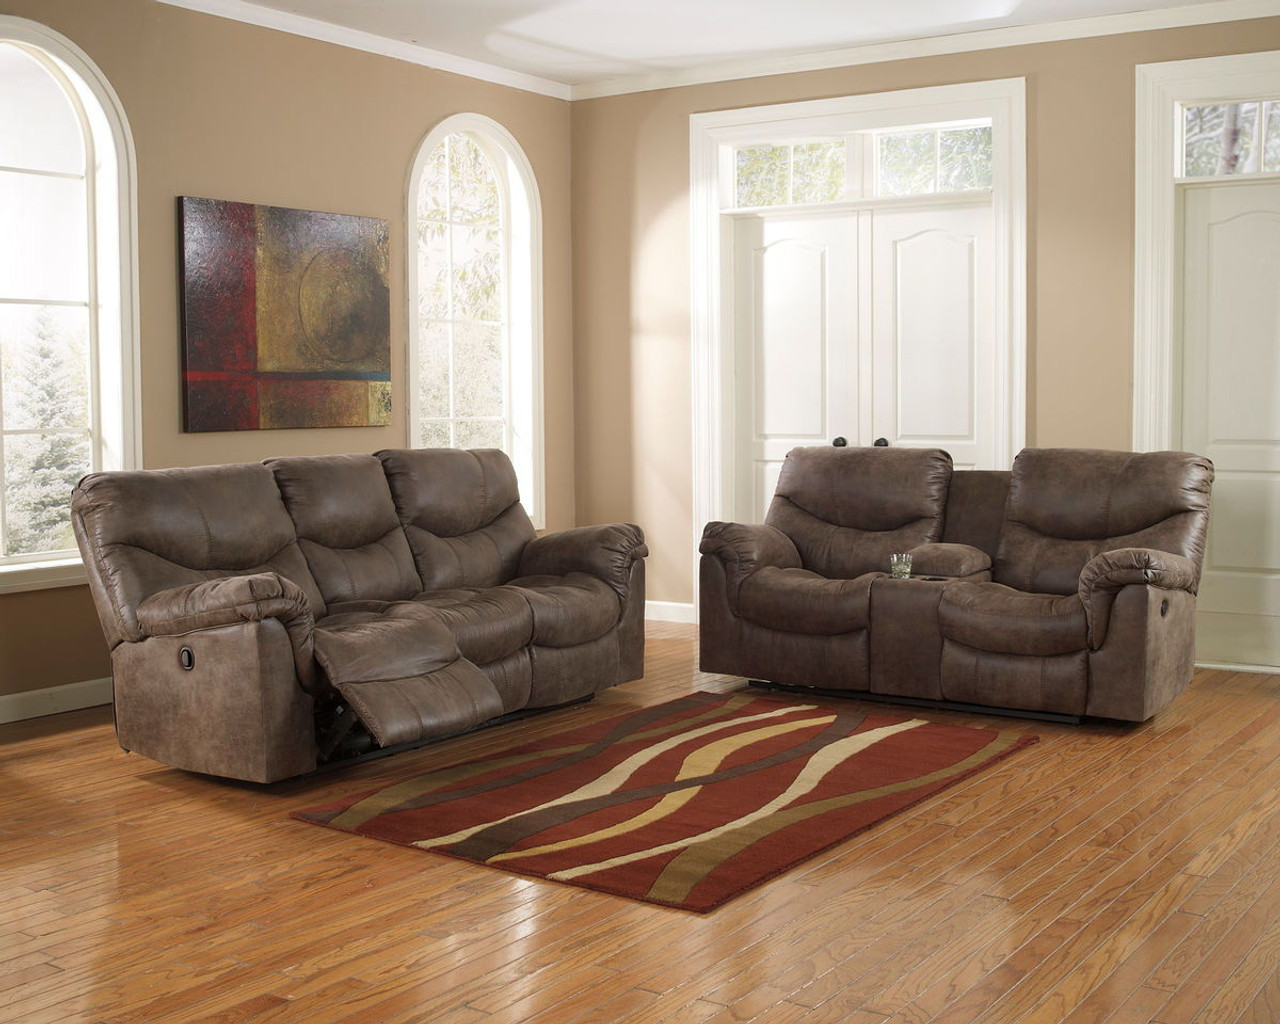 Fine Alzena Gunsmoke Reclining Sofa Double Reclining Loveseat With Console Beutiful Home Inspiration Cosmmahrainfo